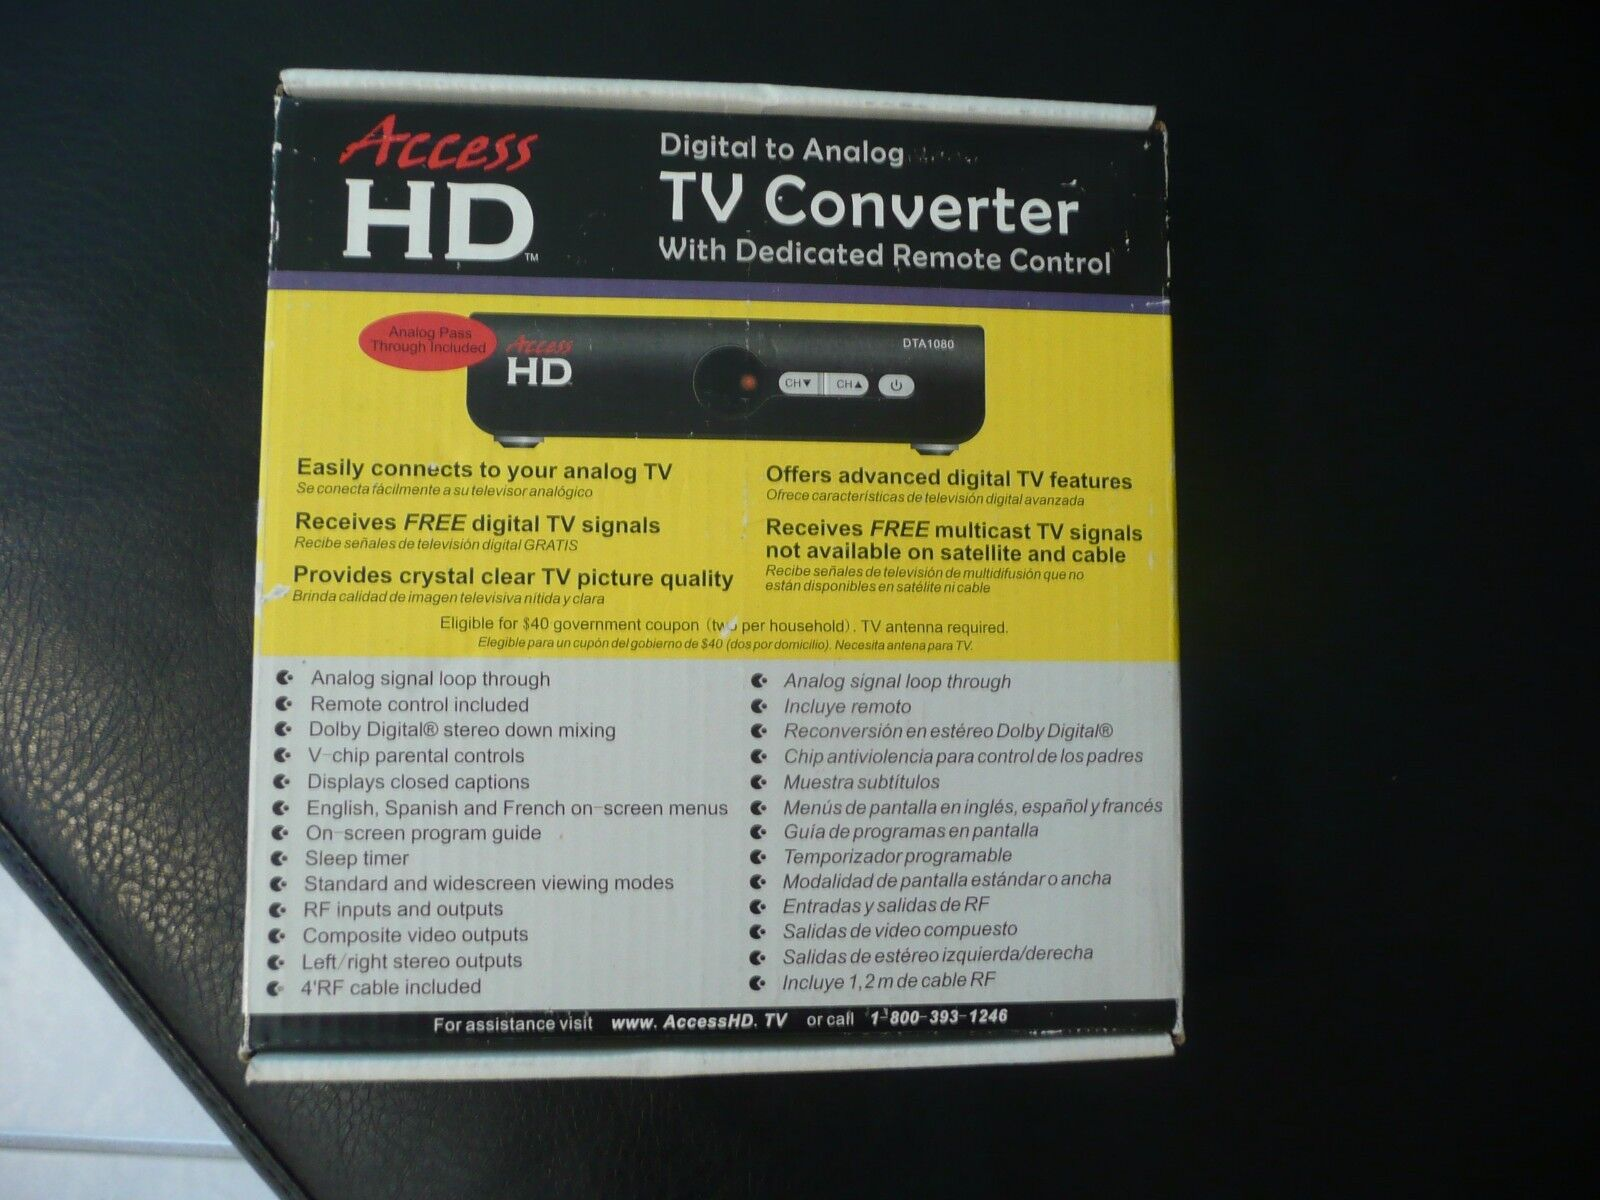 Access HD-TV Converter Digital to Analog with Remote HD